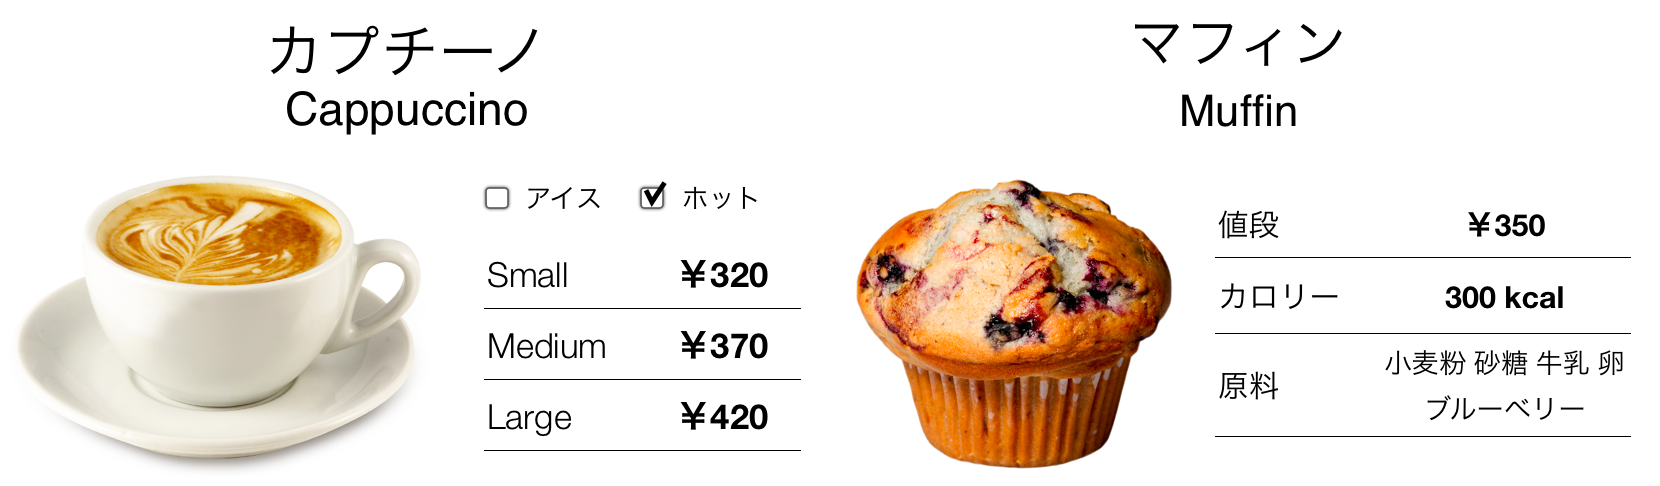 customfields-cafe-cappuccino-muffin.png